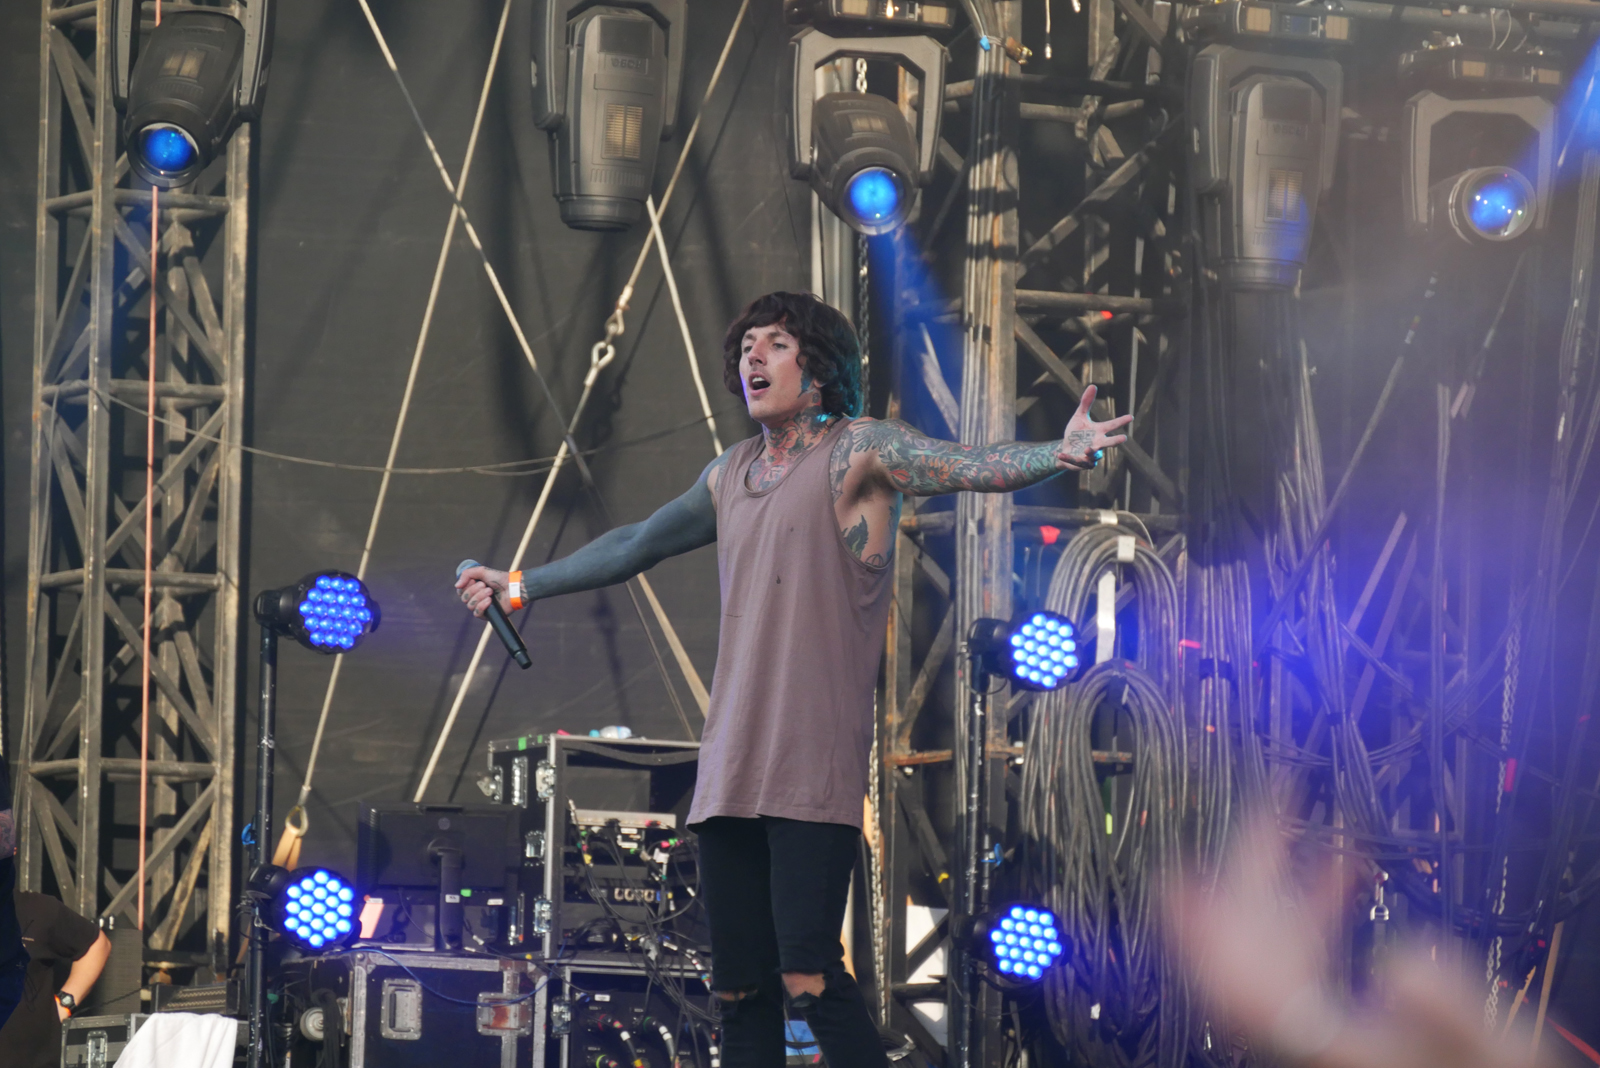 Oliver Sykes Bring me the horizon live concert Rock en Seine 2016 festival paris stage photo usofparis blog